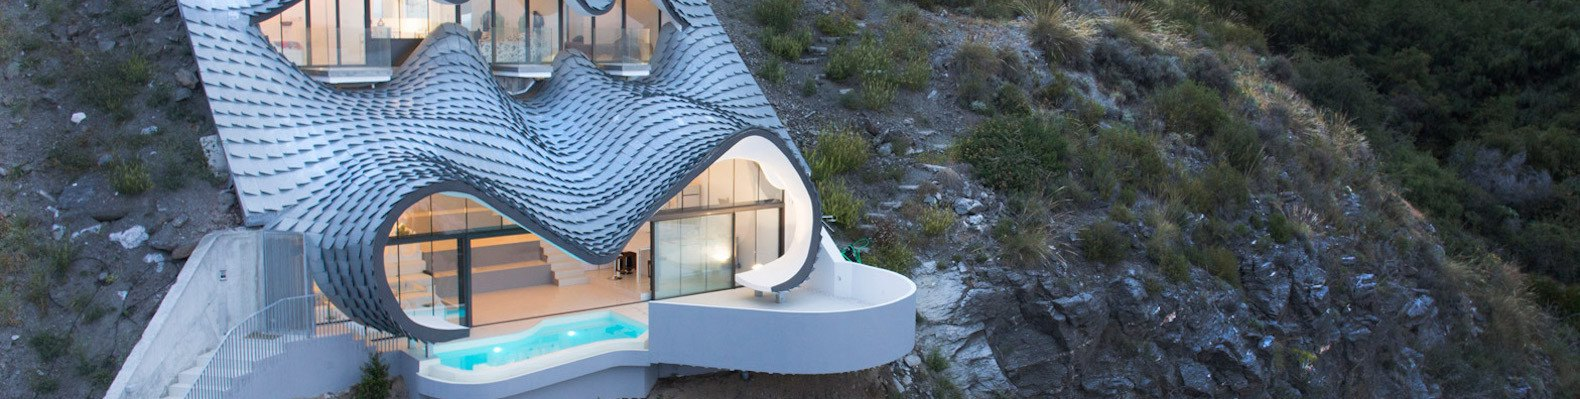 Superb Amazing Dragon Inspired Cliff House In Spain Uses The Earth To Stay Cool |  Inhabitat   Green Design, Innovation, Architecture, Green Building